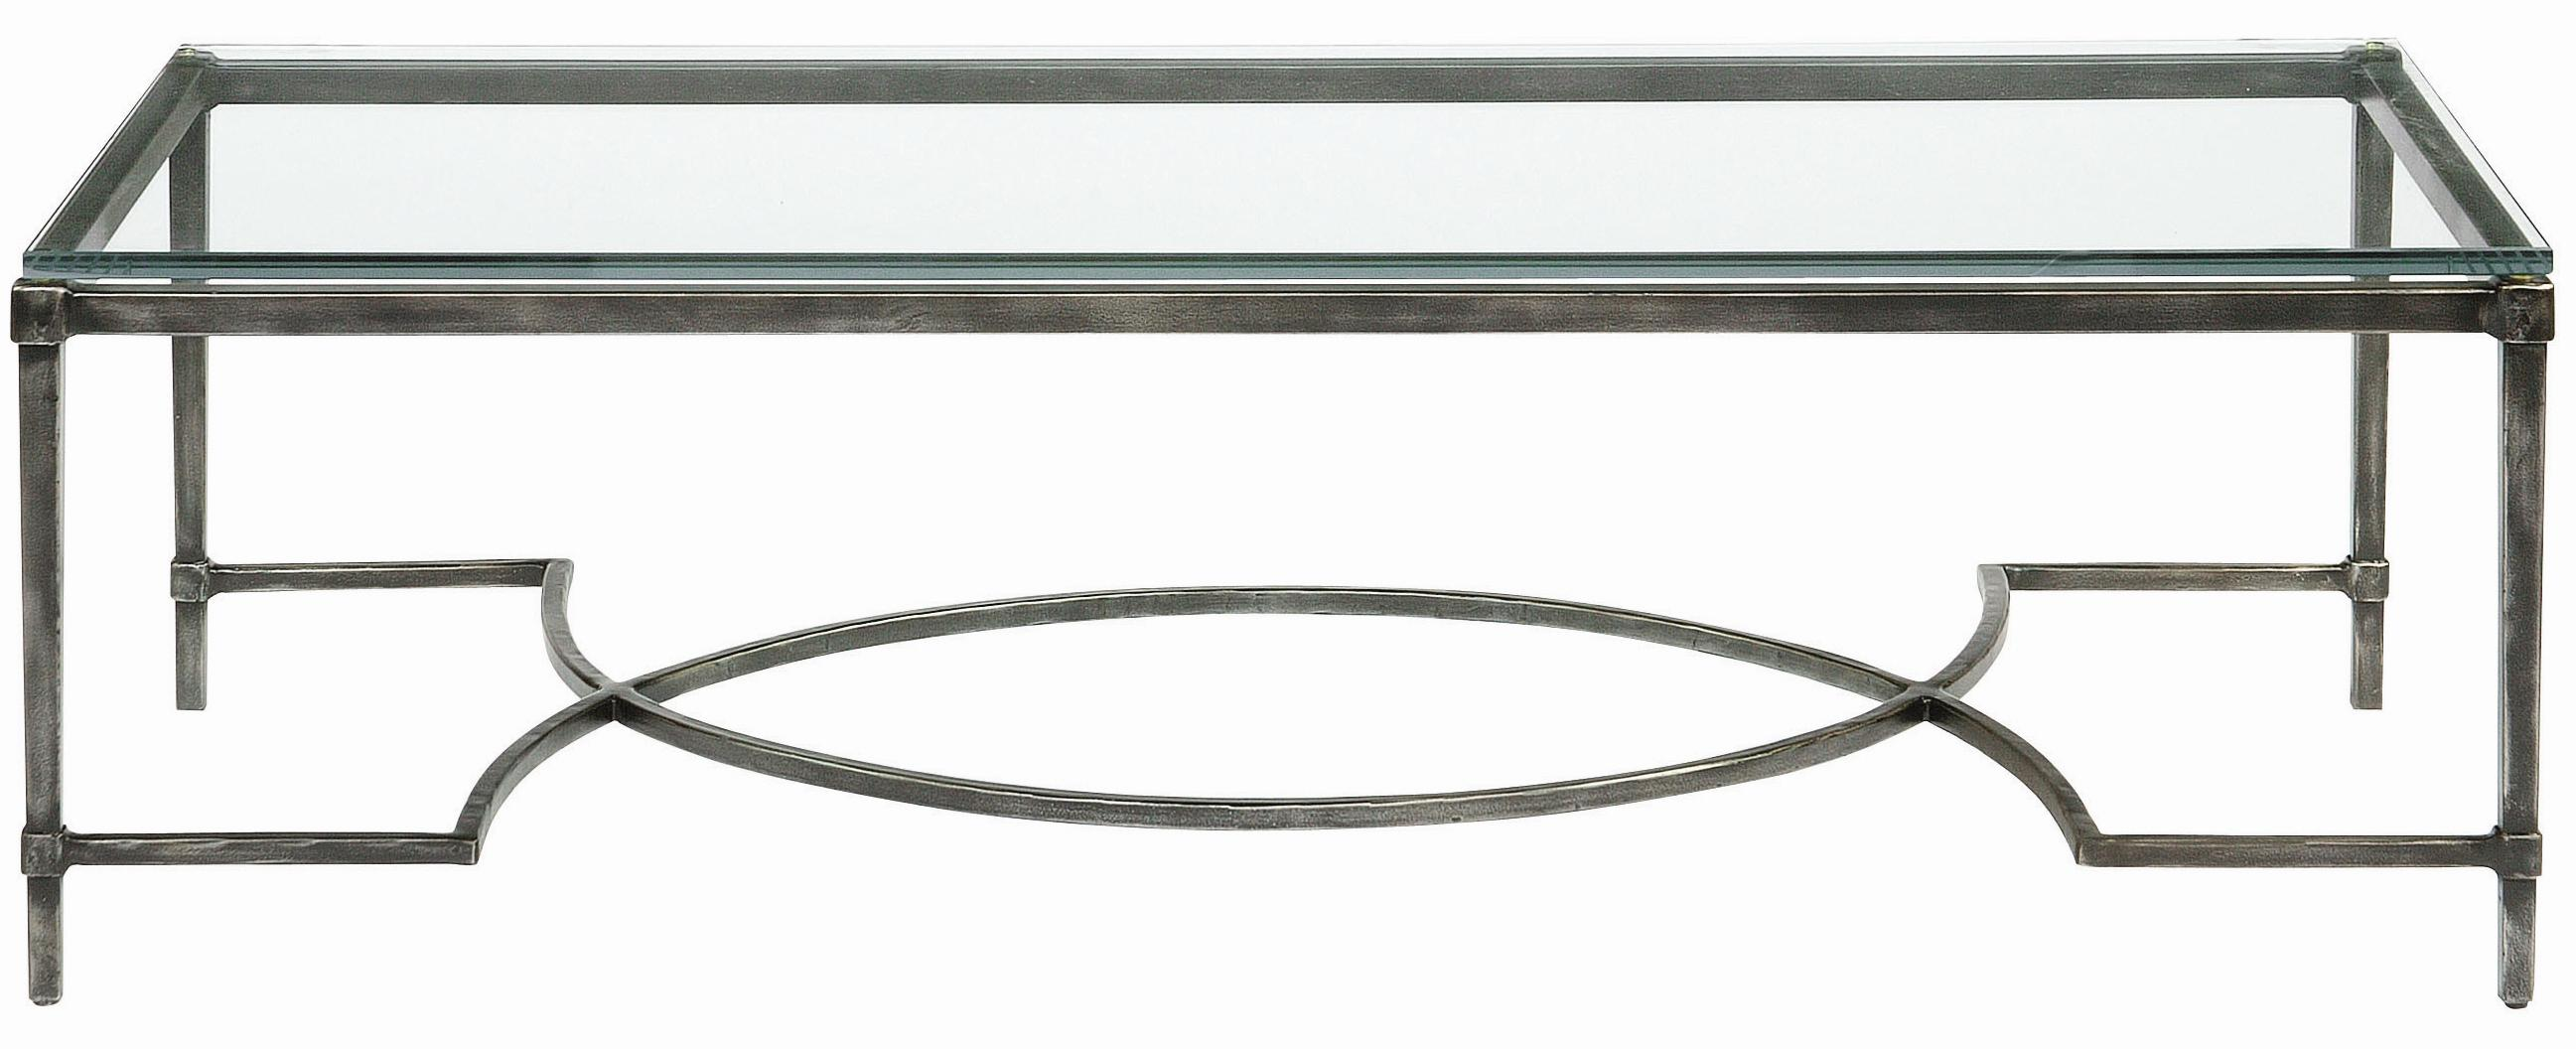 Bernhardt Interiors - Accents Palmer Metal Cocktail Table - Item Number: 320-021+021G